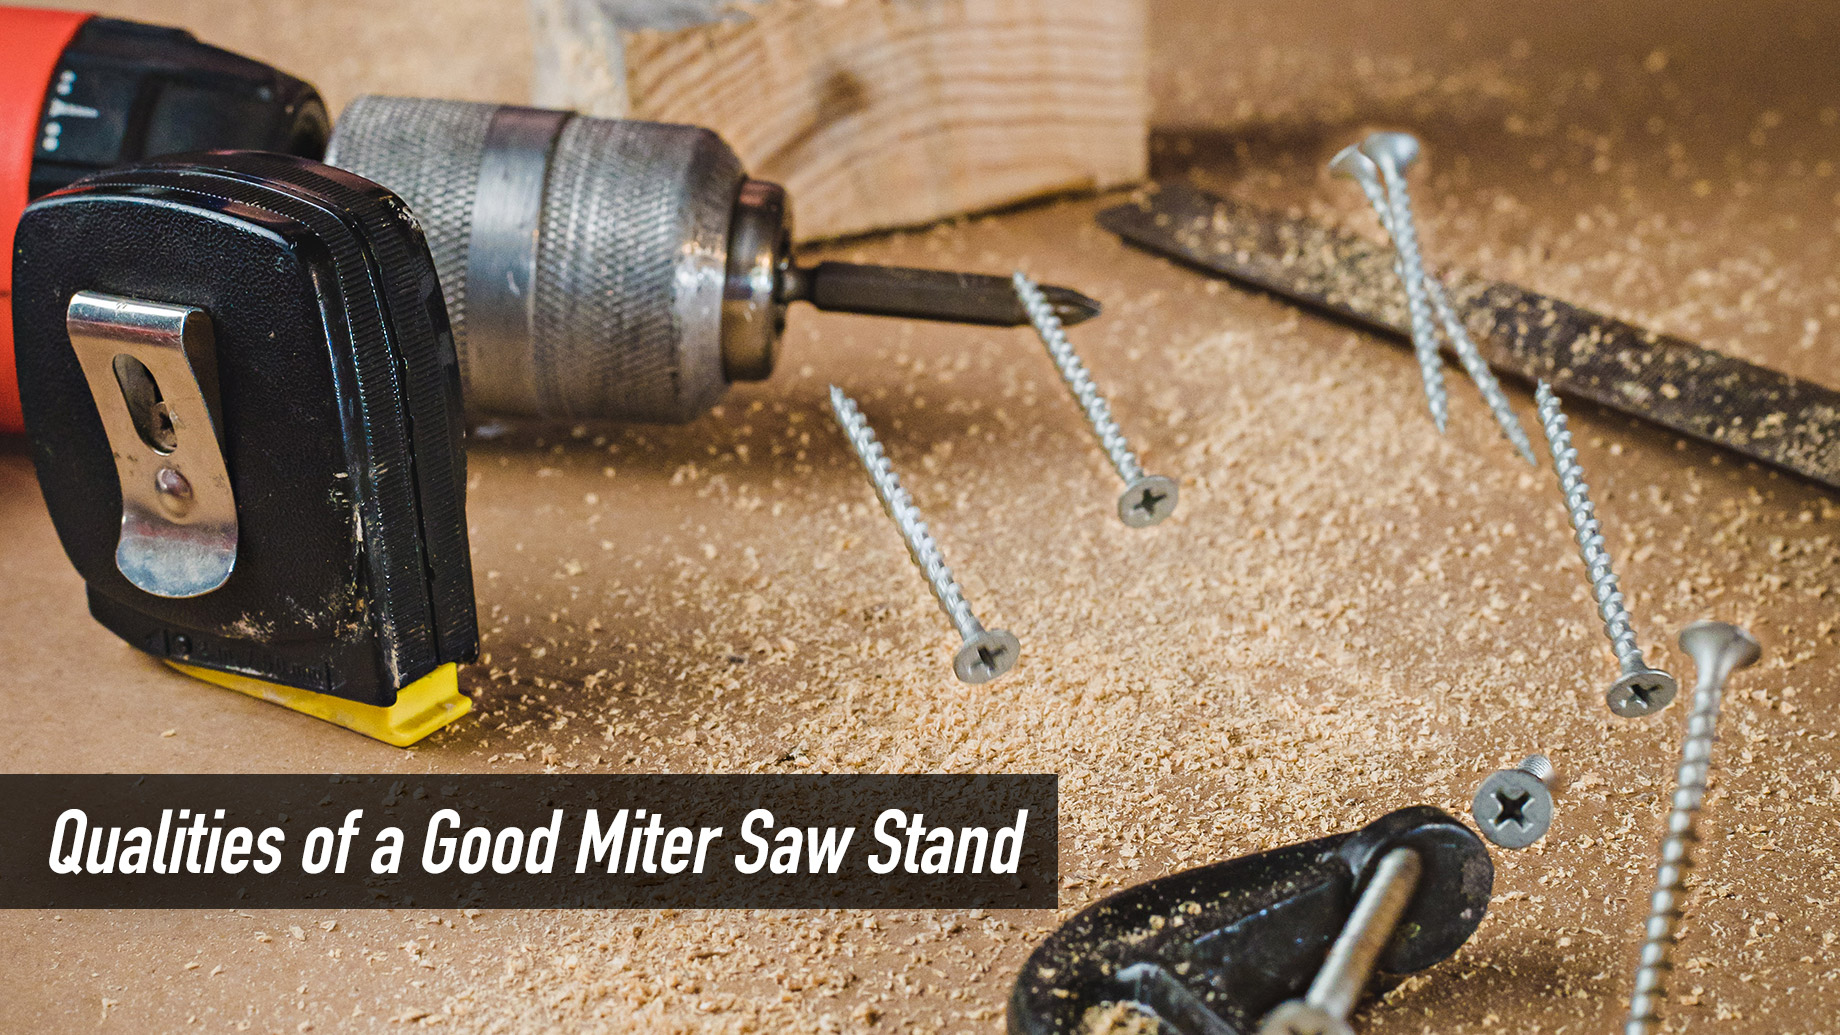 Qualities of a Good Miter Saw Stand